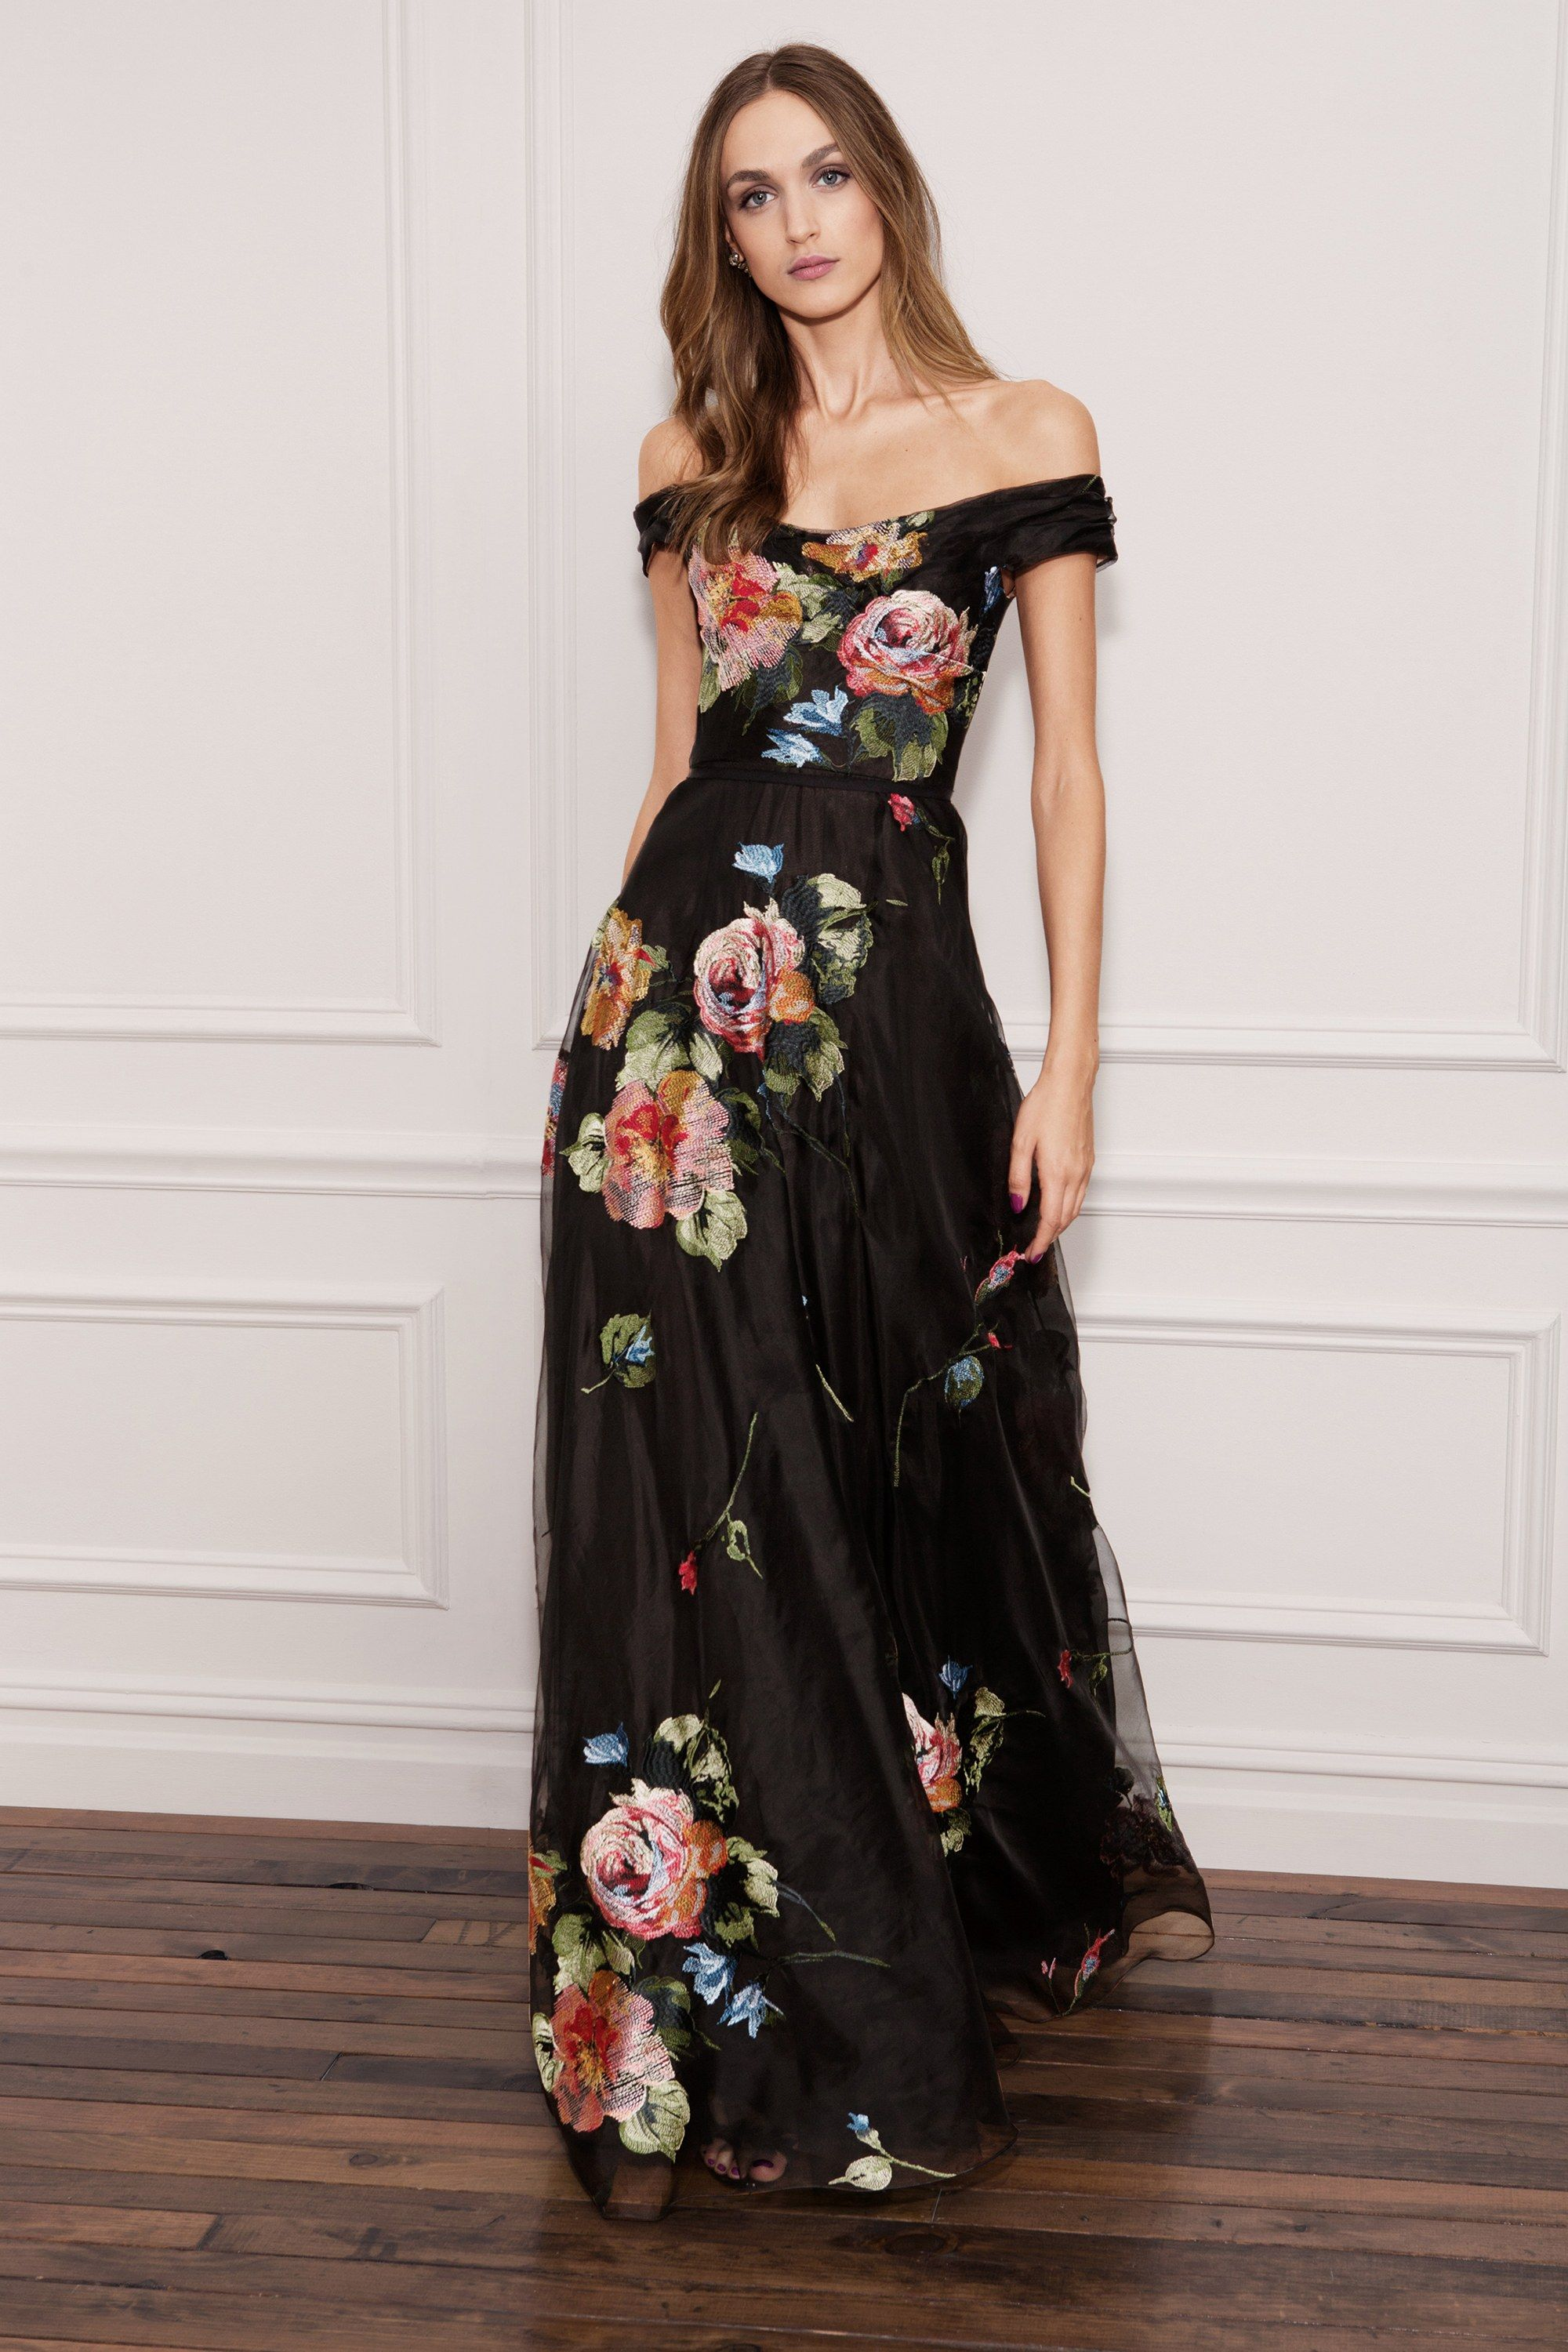 ba5e53f94b9b Marchesa Notte Spring 2018 Ready-to-Wear Fashion Show in 2019 ...